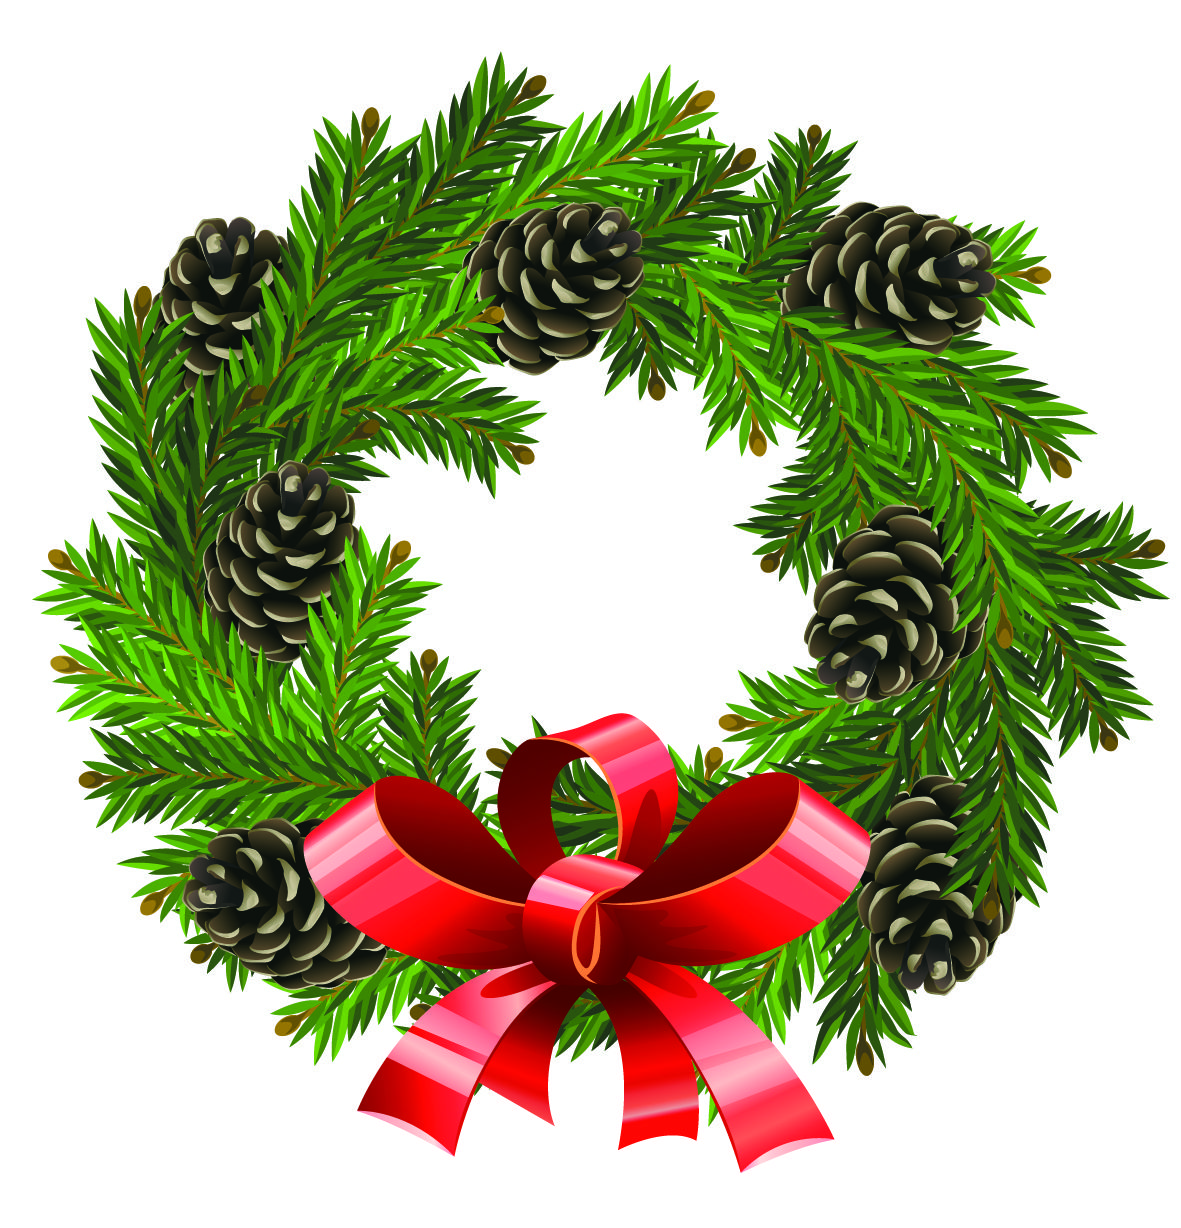 xmas wreath clipart clipartfest christmas pinterest wreaths rh pinterest com christmas wreaths clipart design christmas wreaths clipart design